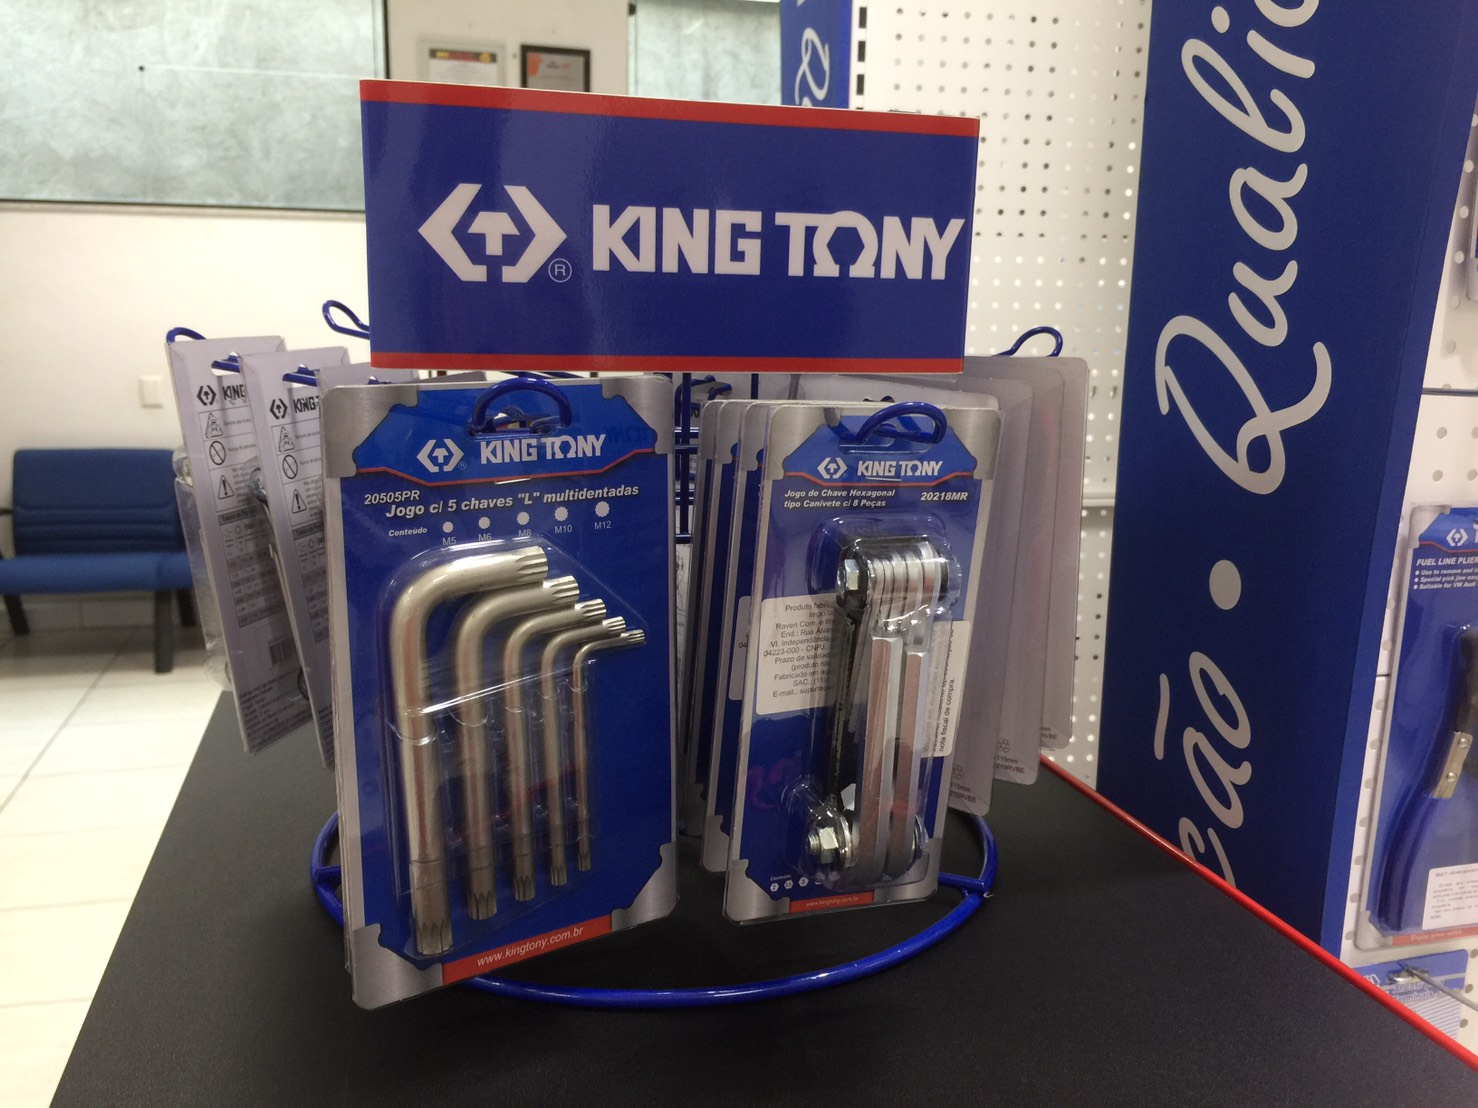 KING TONY tools display - 02